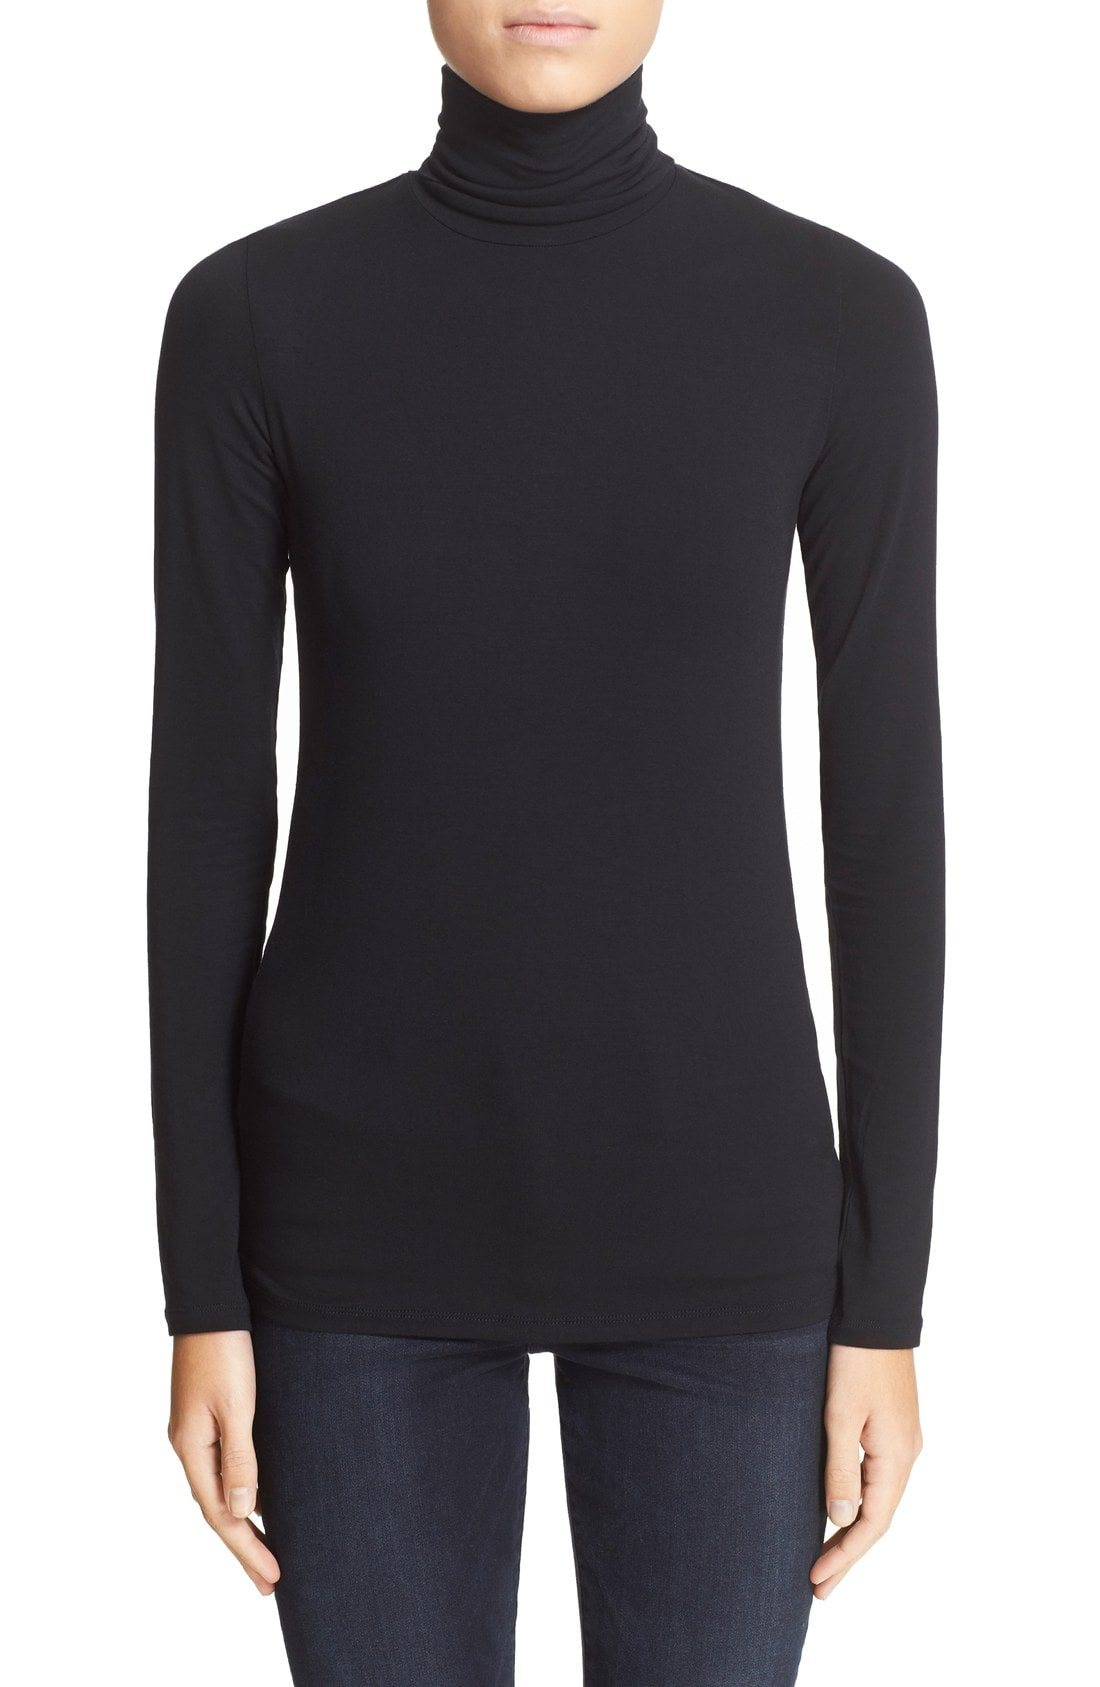 Women's Turtleneck Tops | Nordstrom